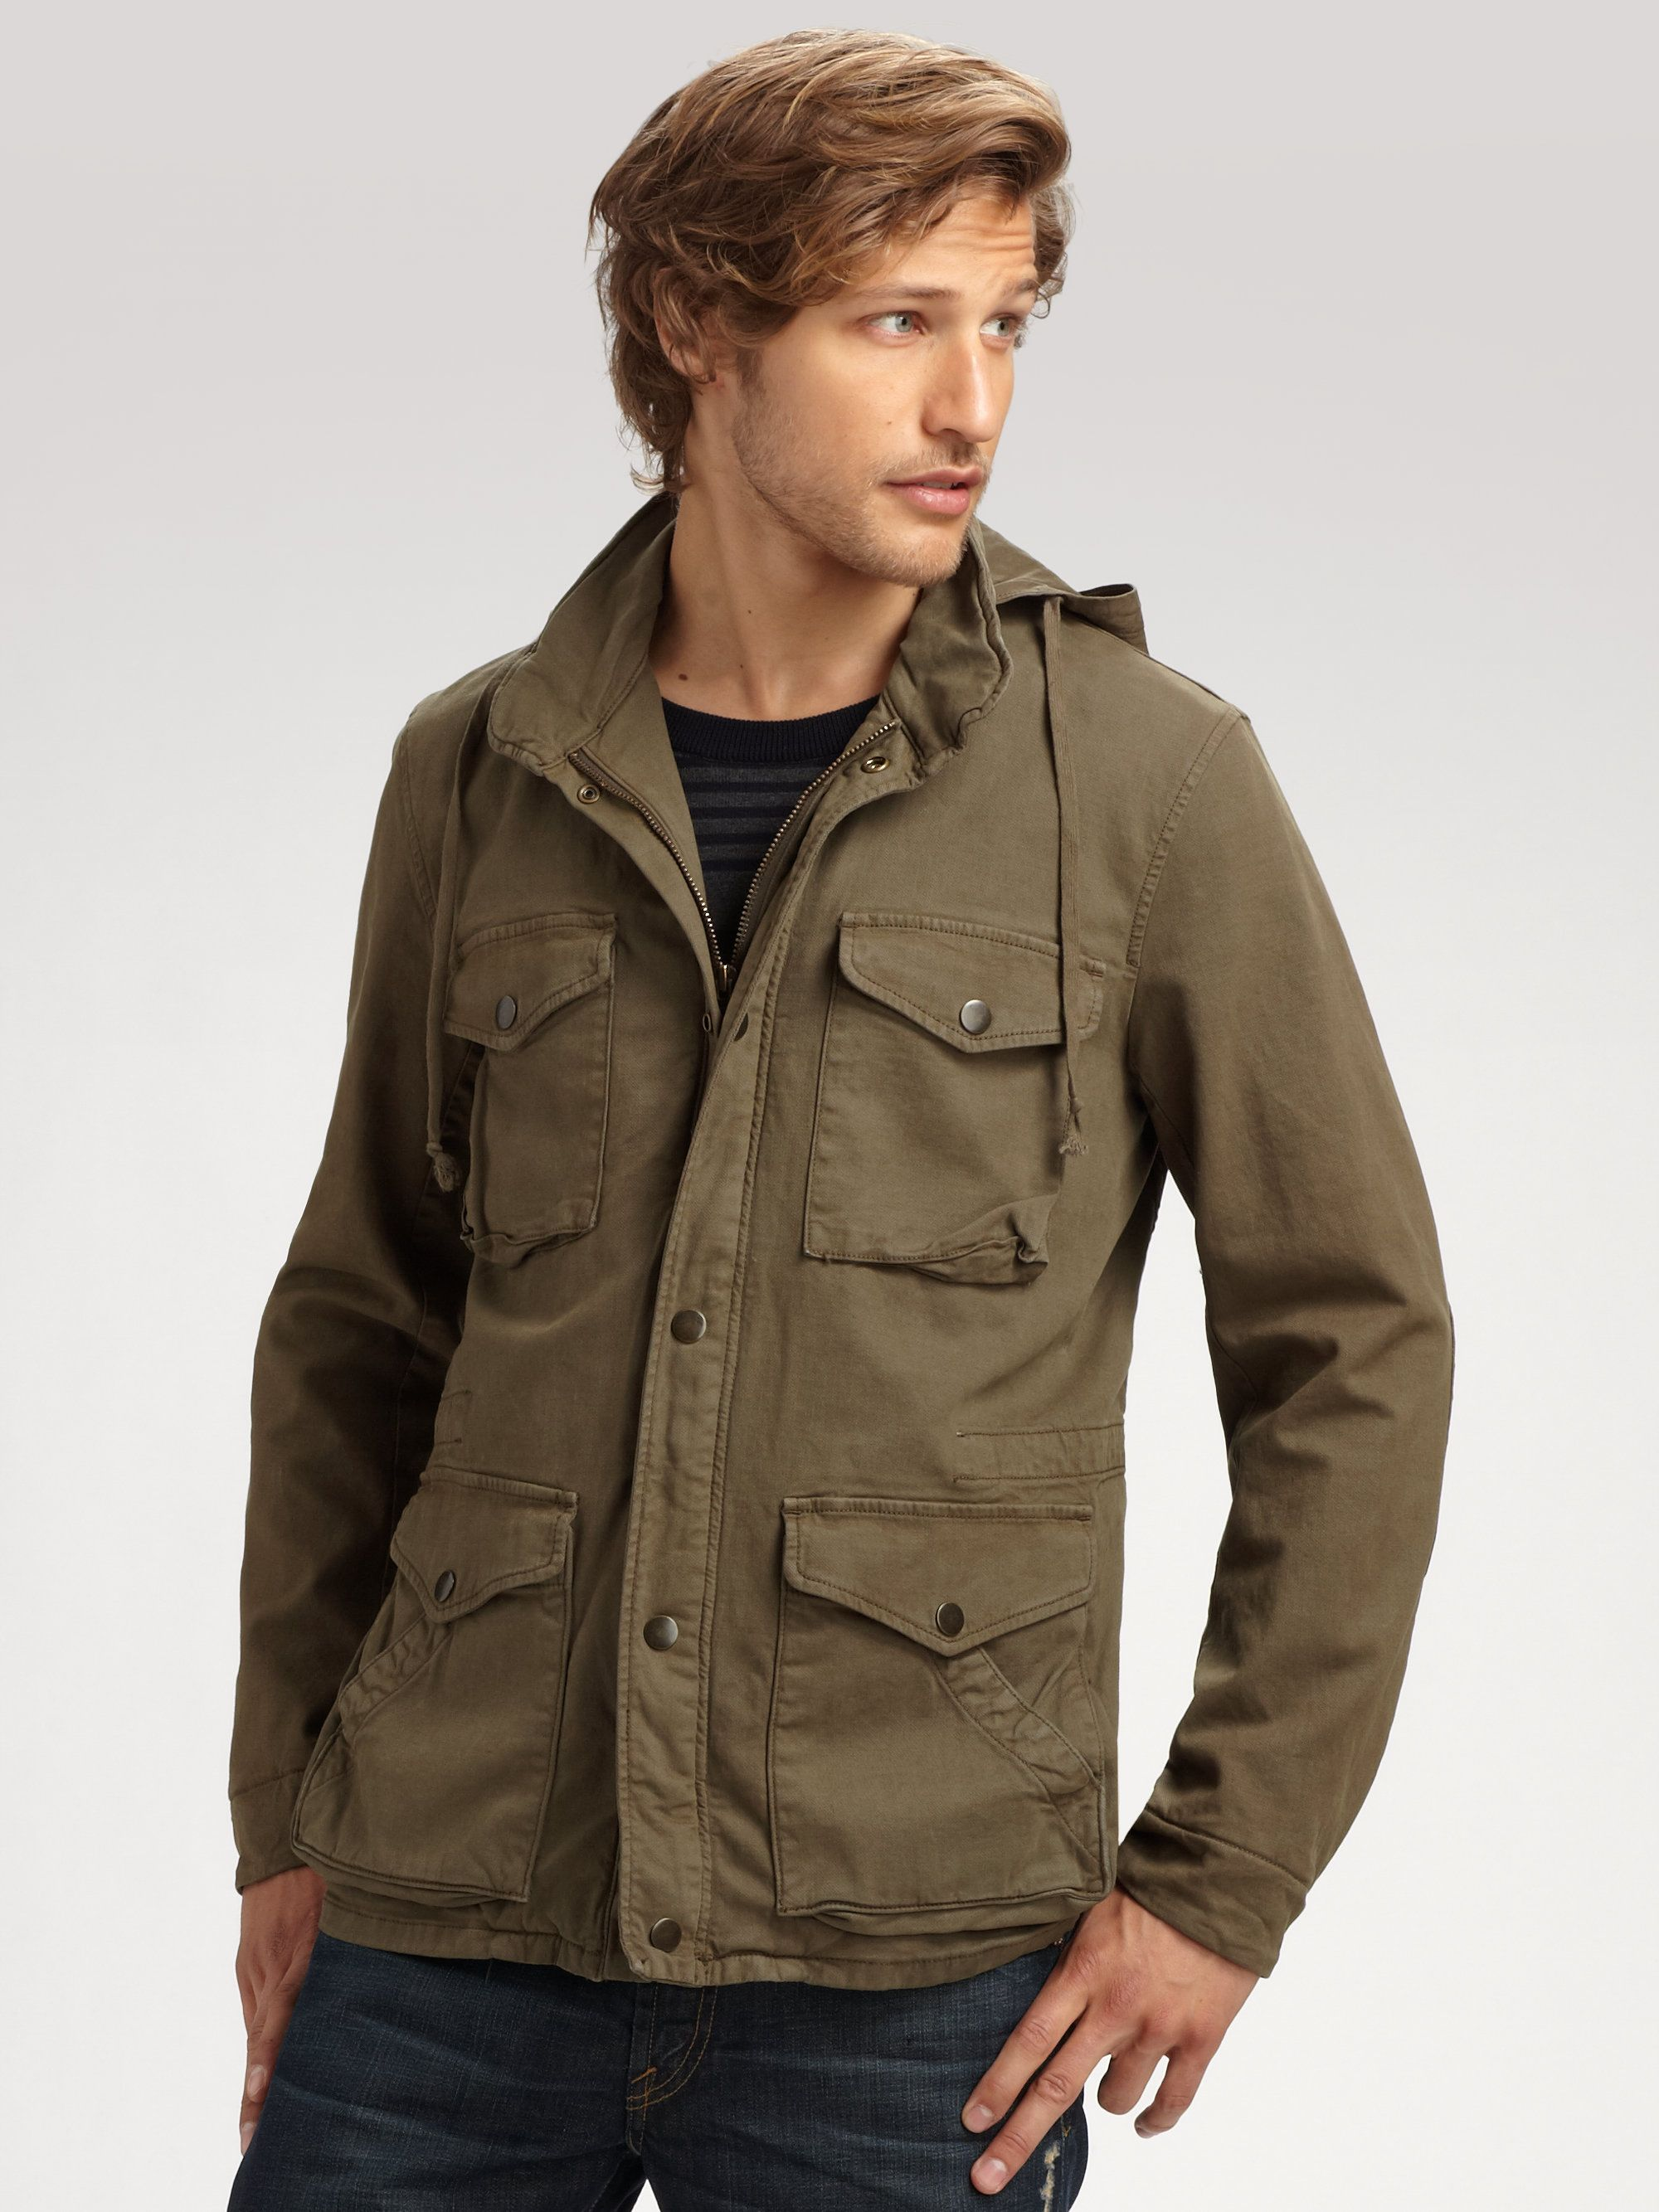 Vince Army Coat With Hood Army Coat Clothes Military Jacket [ 2667 x 2000 Pixel ]